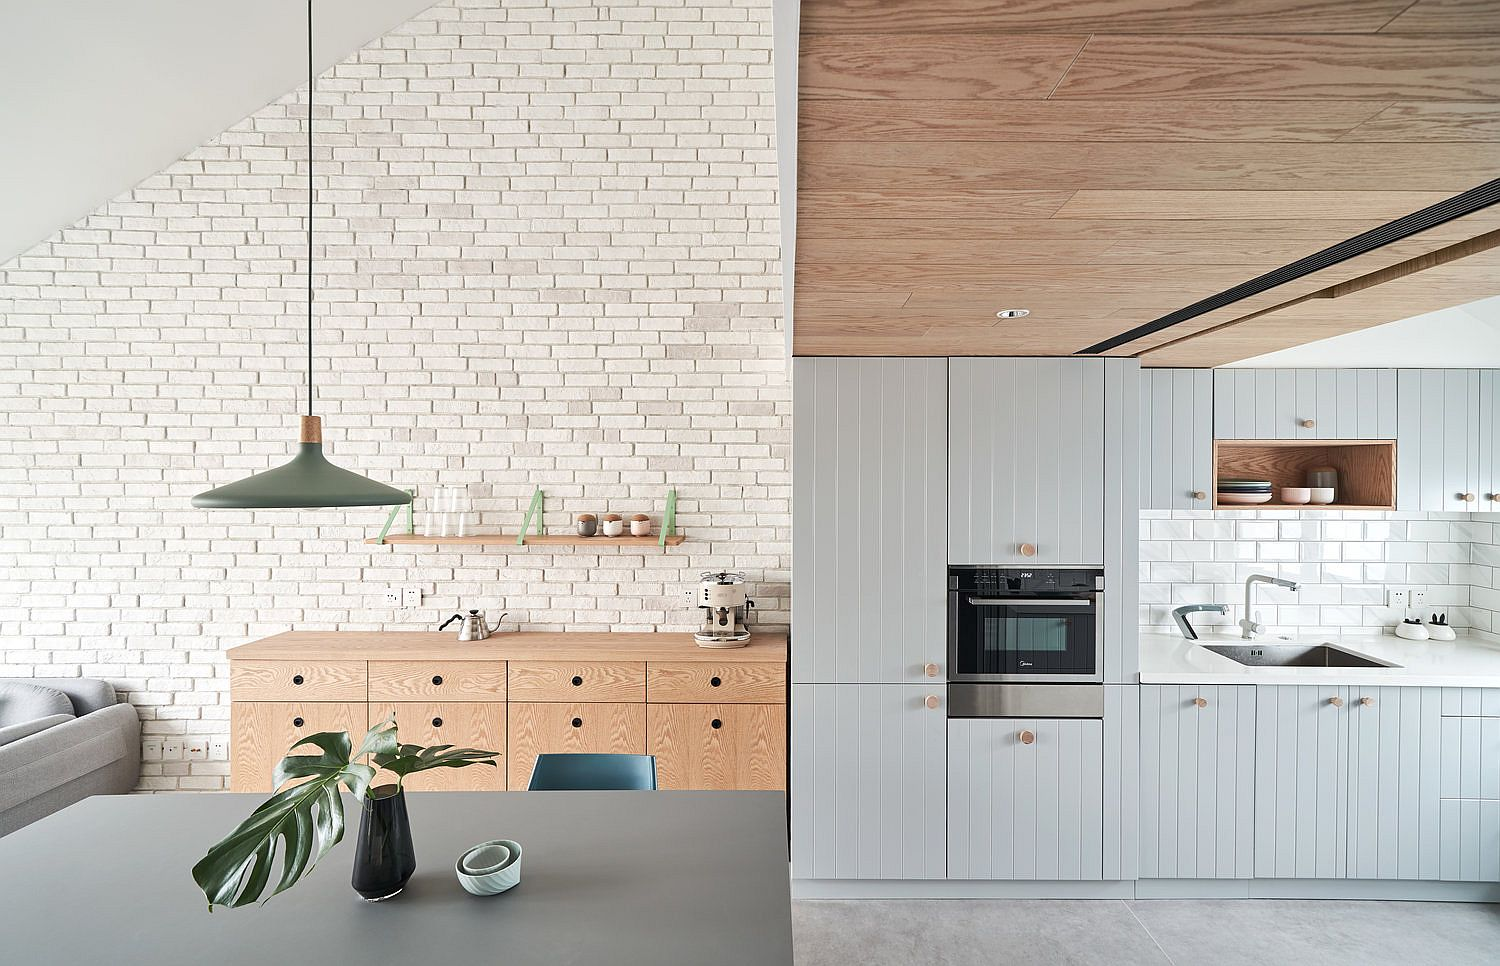 Wood-and-weathered-tiles-on-the-wall-add-warmth-to-the-apartment-interior